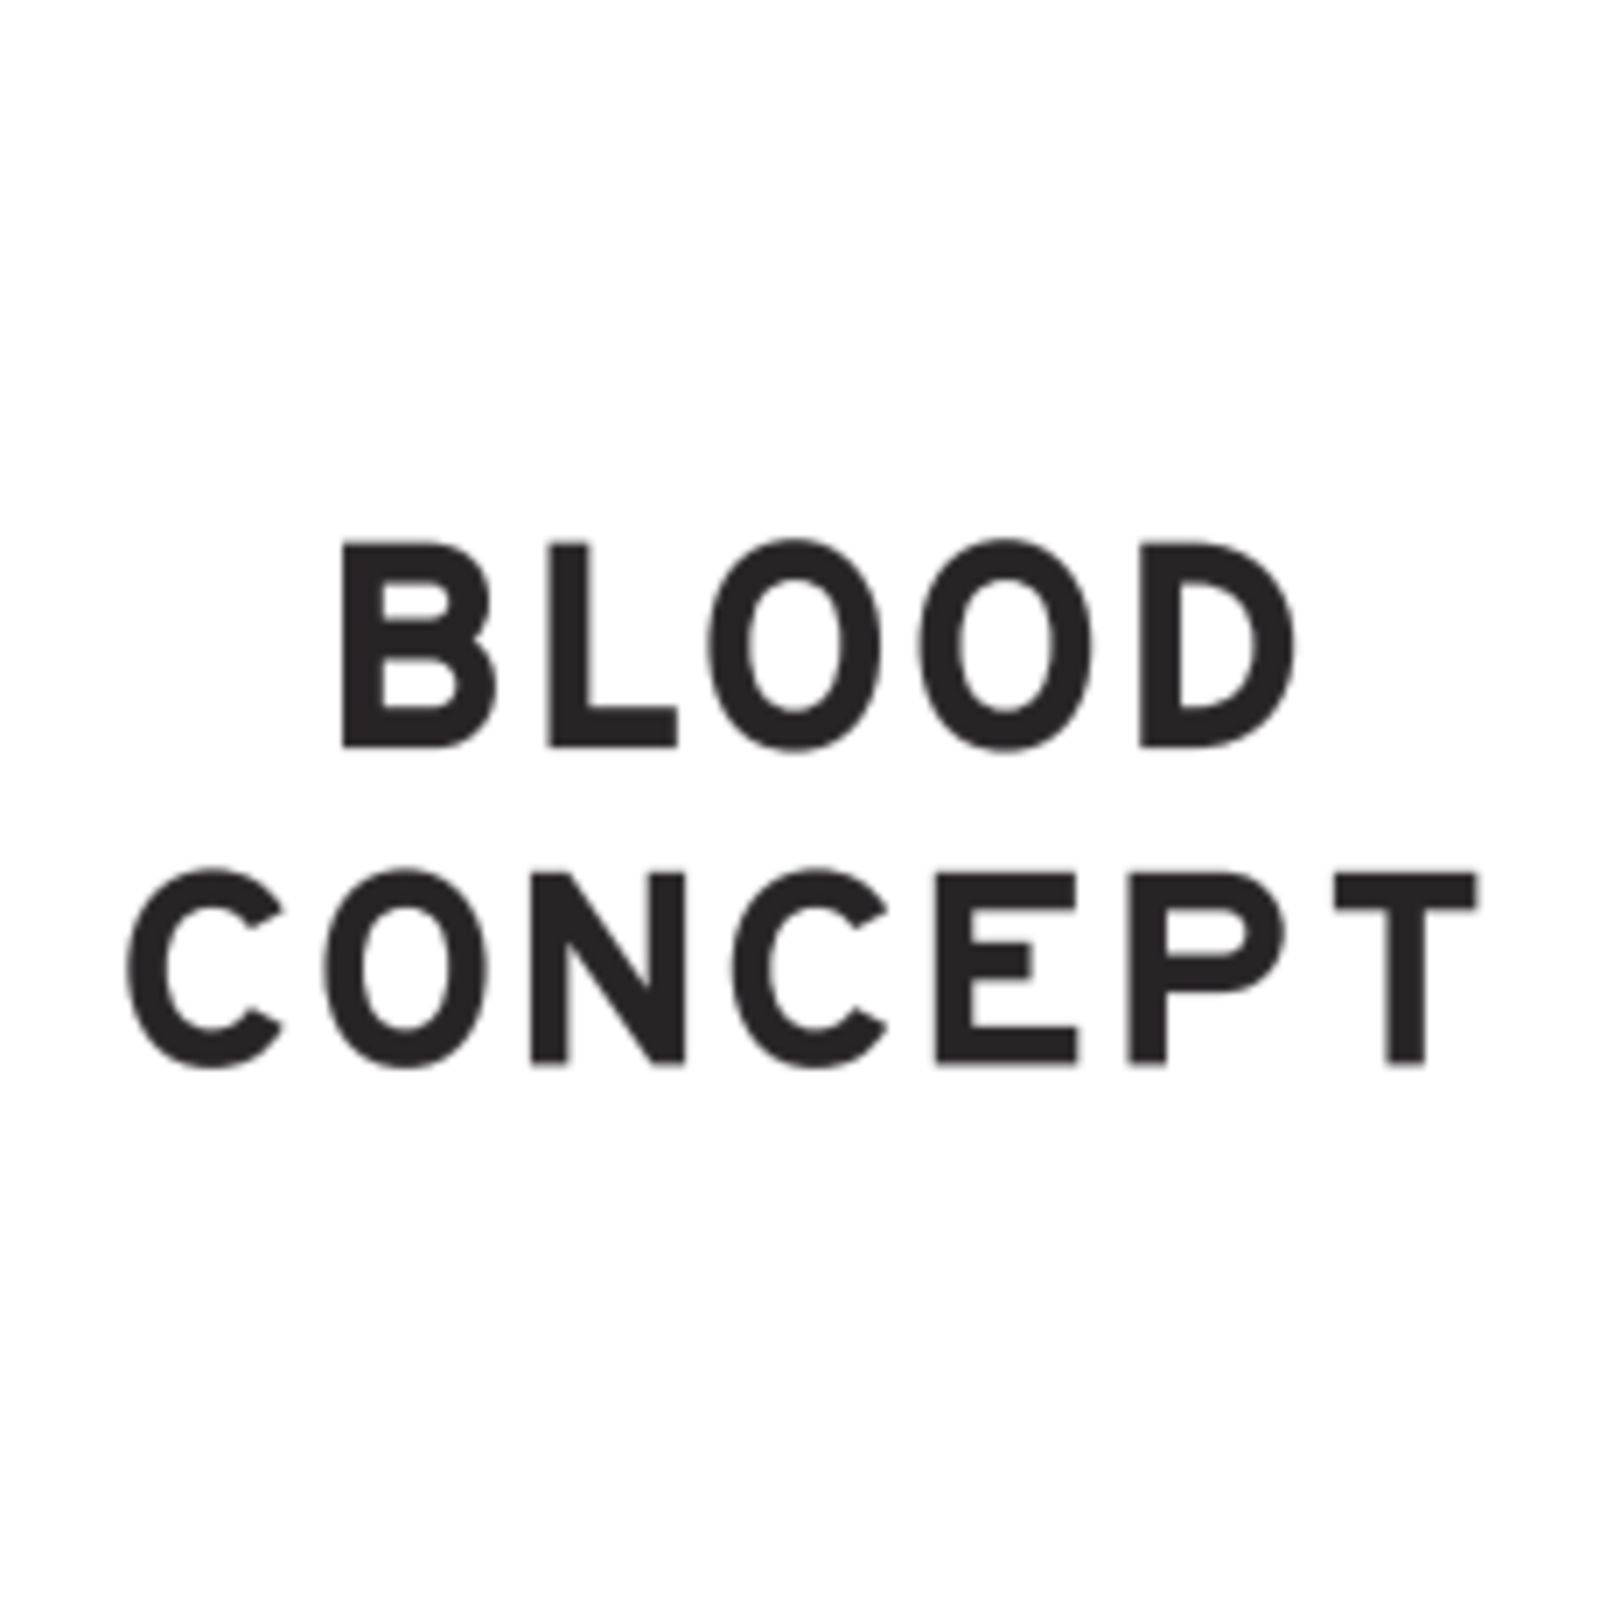 Blood Concept (Image 1)